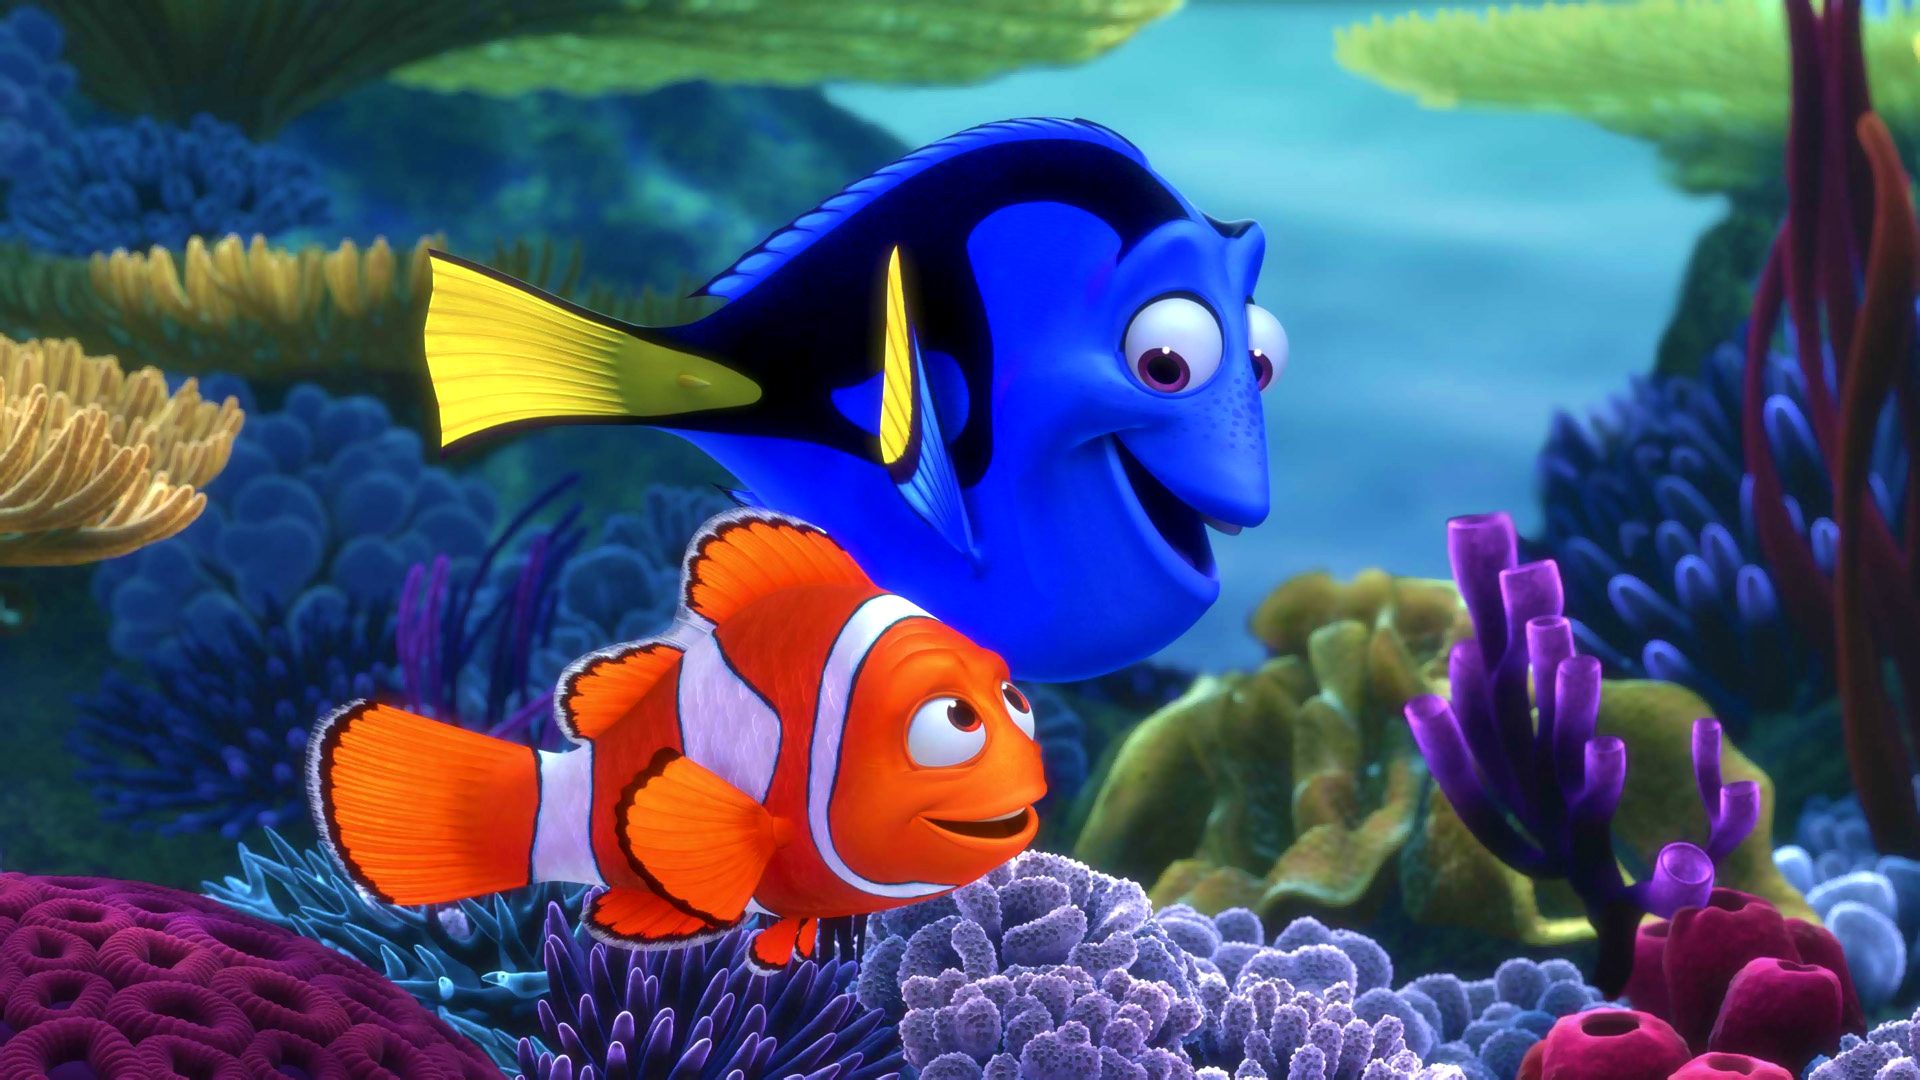 Finding Nemo Wallpapers, Pictures, Images